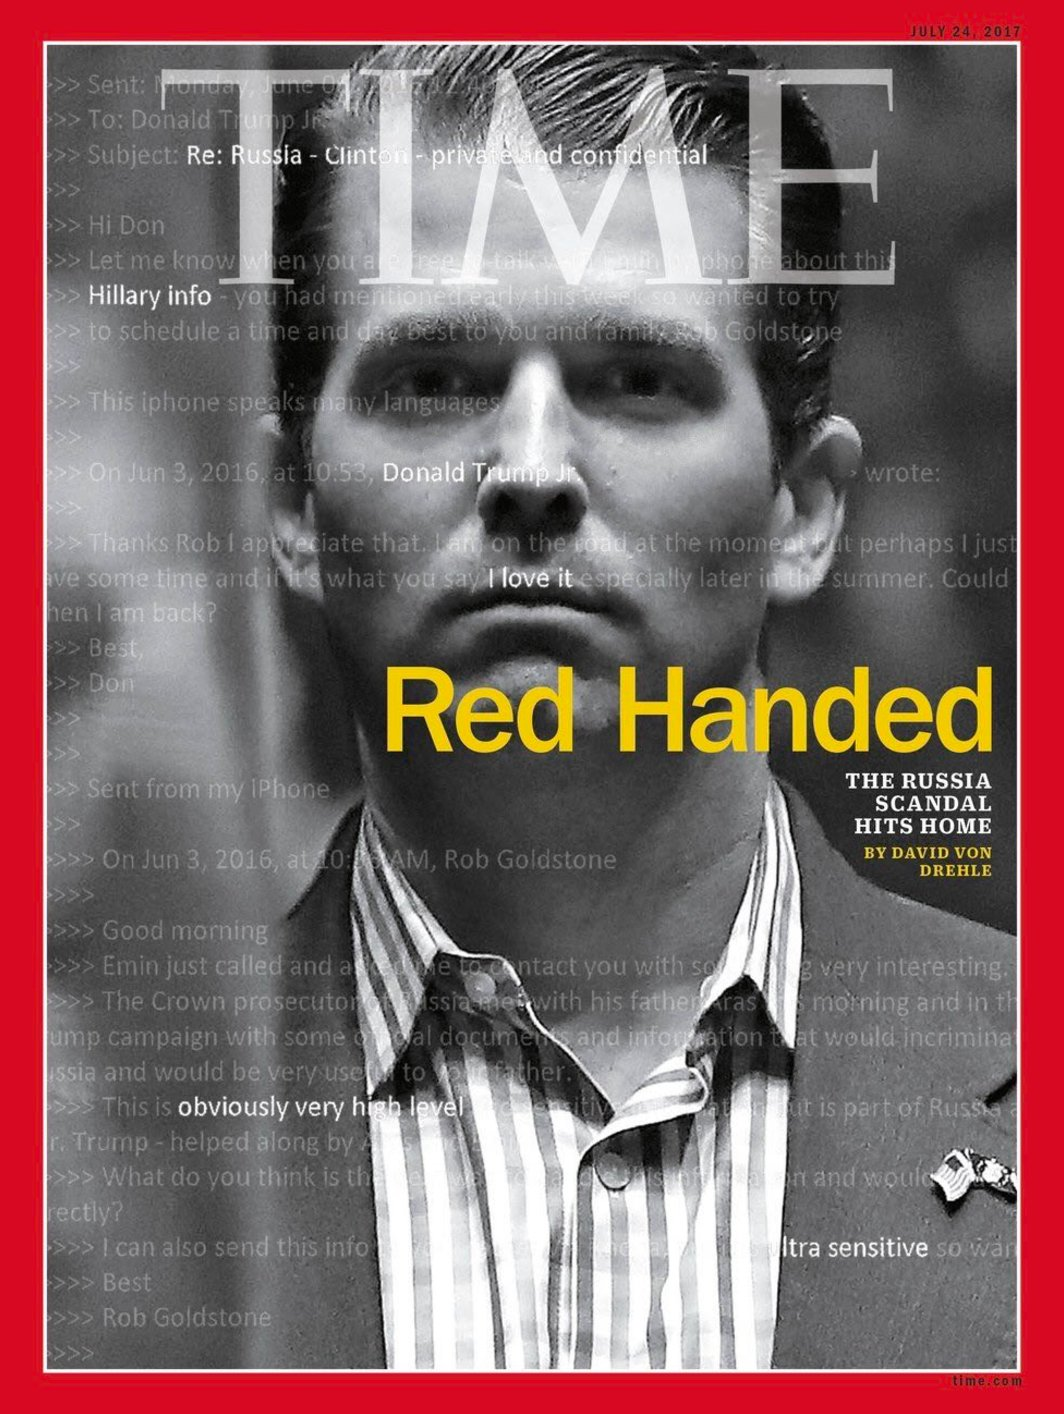 Aww, Junior's first @Time cover, Donald must be so proud. https://t.co/dg0vgGLxPX